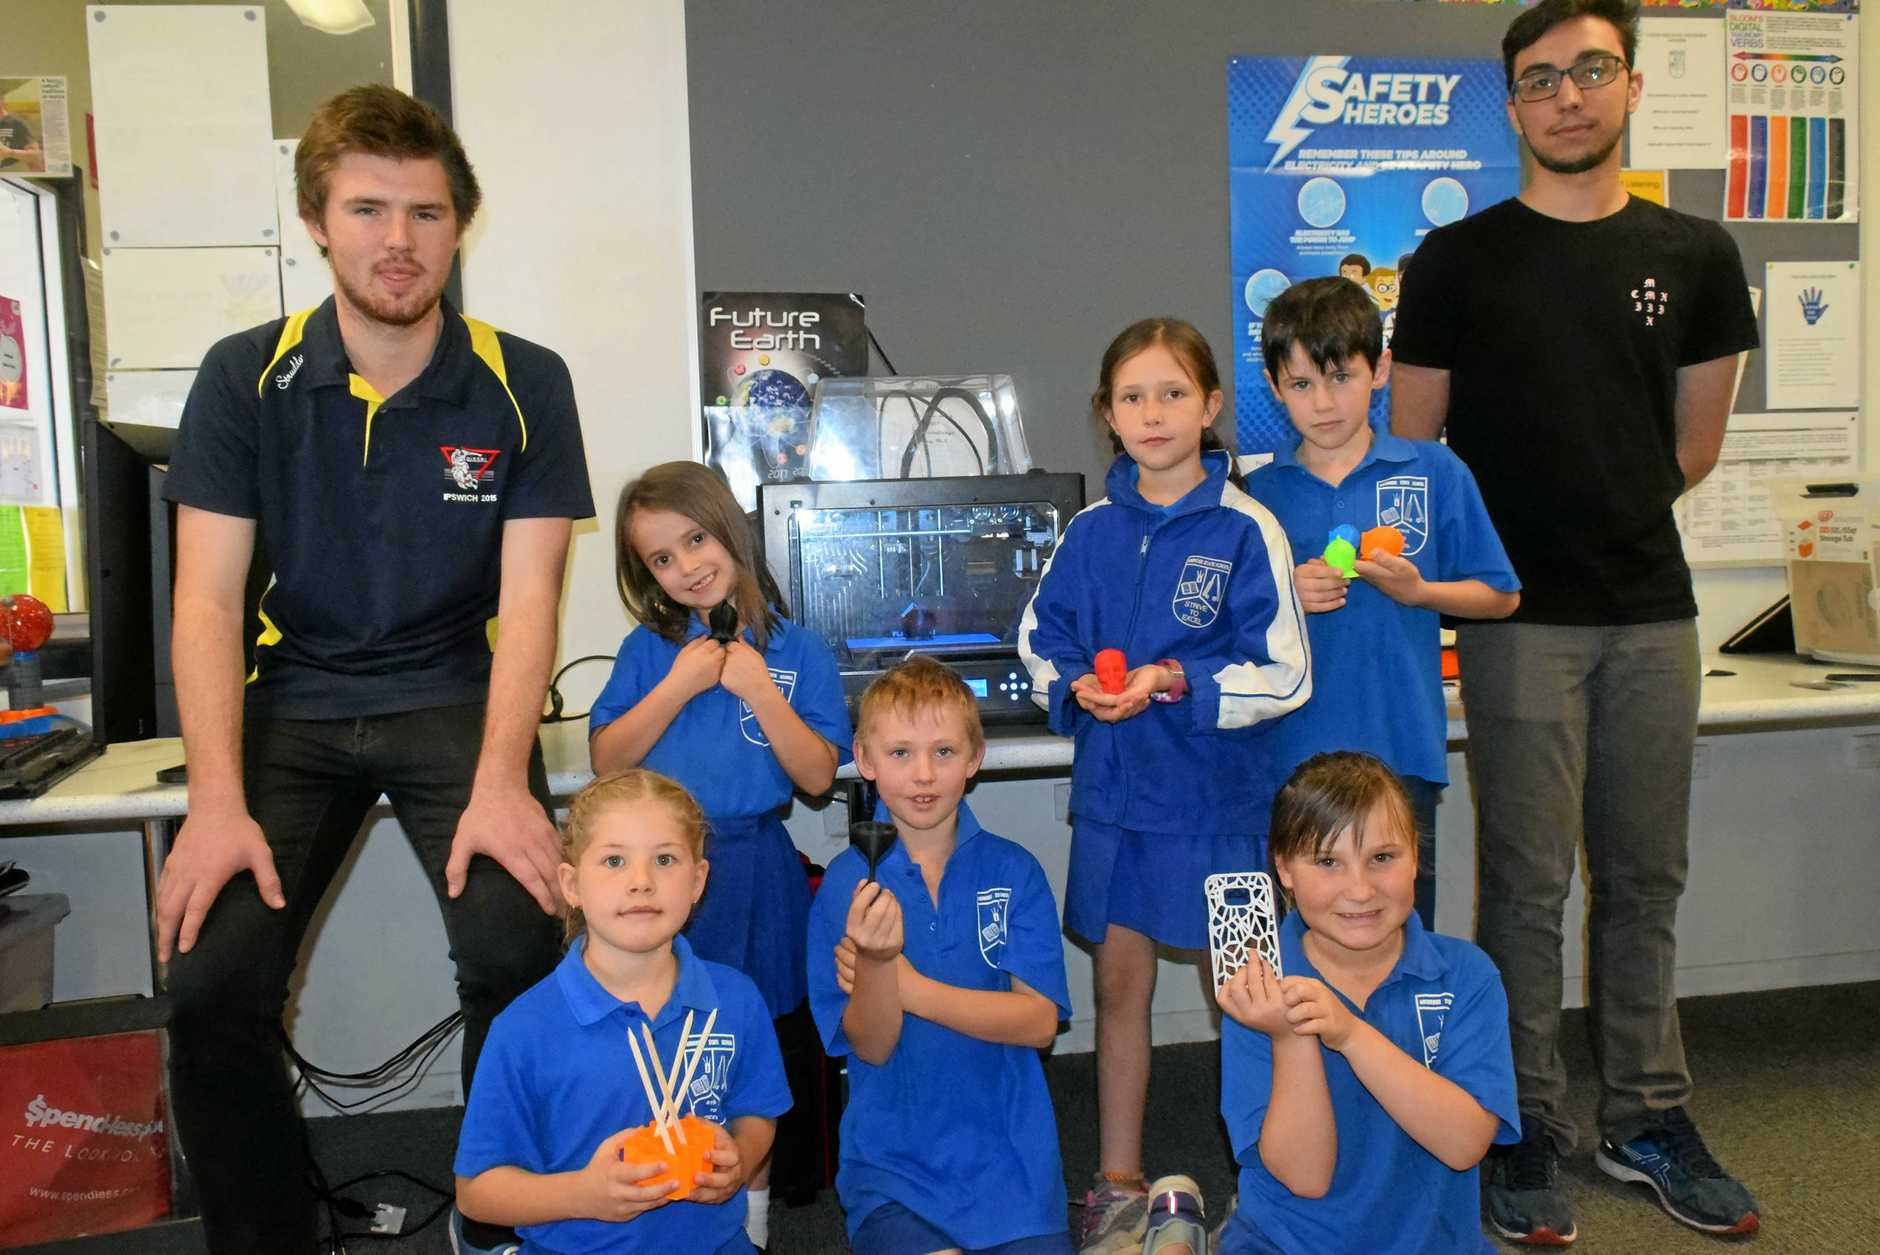 BACK ROW: ABA 3D Printing Solutions co-founders Ben Emerick and Alex Fleming with Ambrose State School students Katie-Maree Grahame, 7, Zoe King, 9, Riley Zeimer, 9. Front row: Students Kaitlyn Smith, 7, Declan Newton, 8, Harmony, 7.